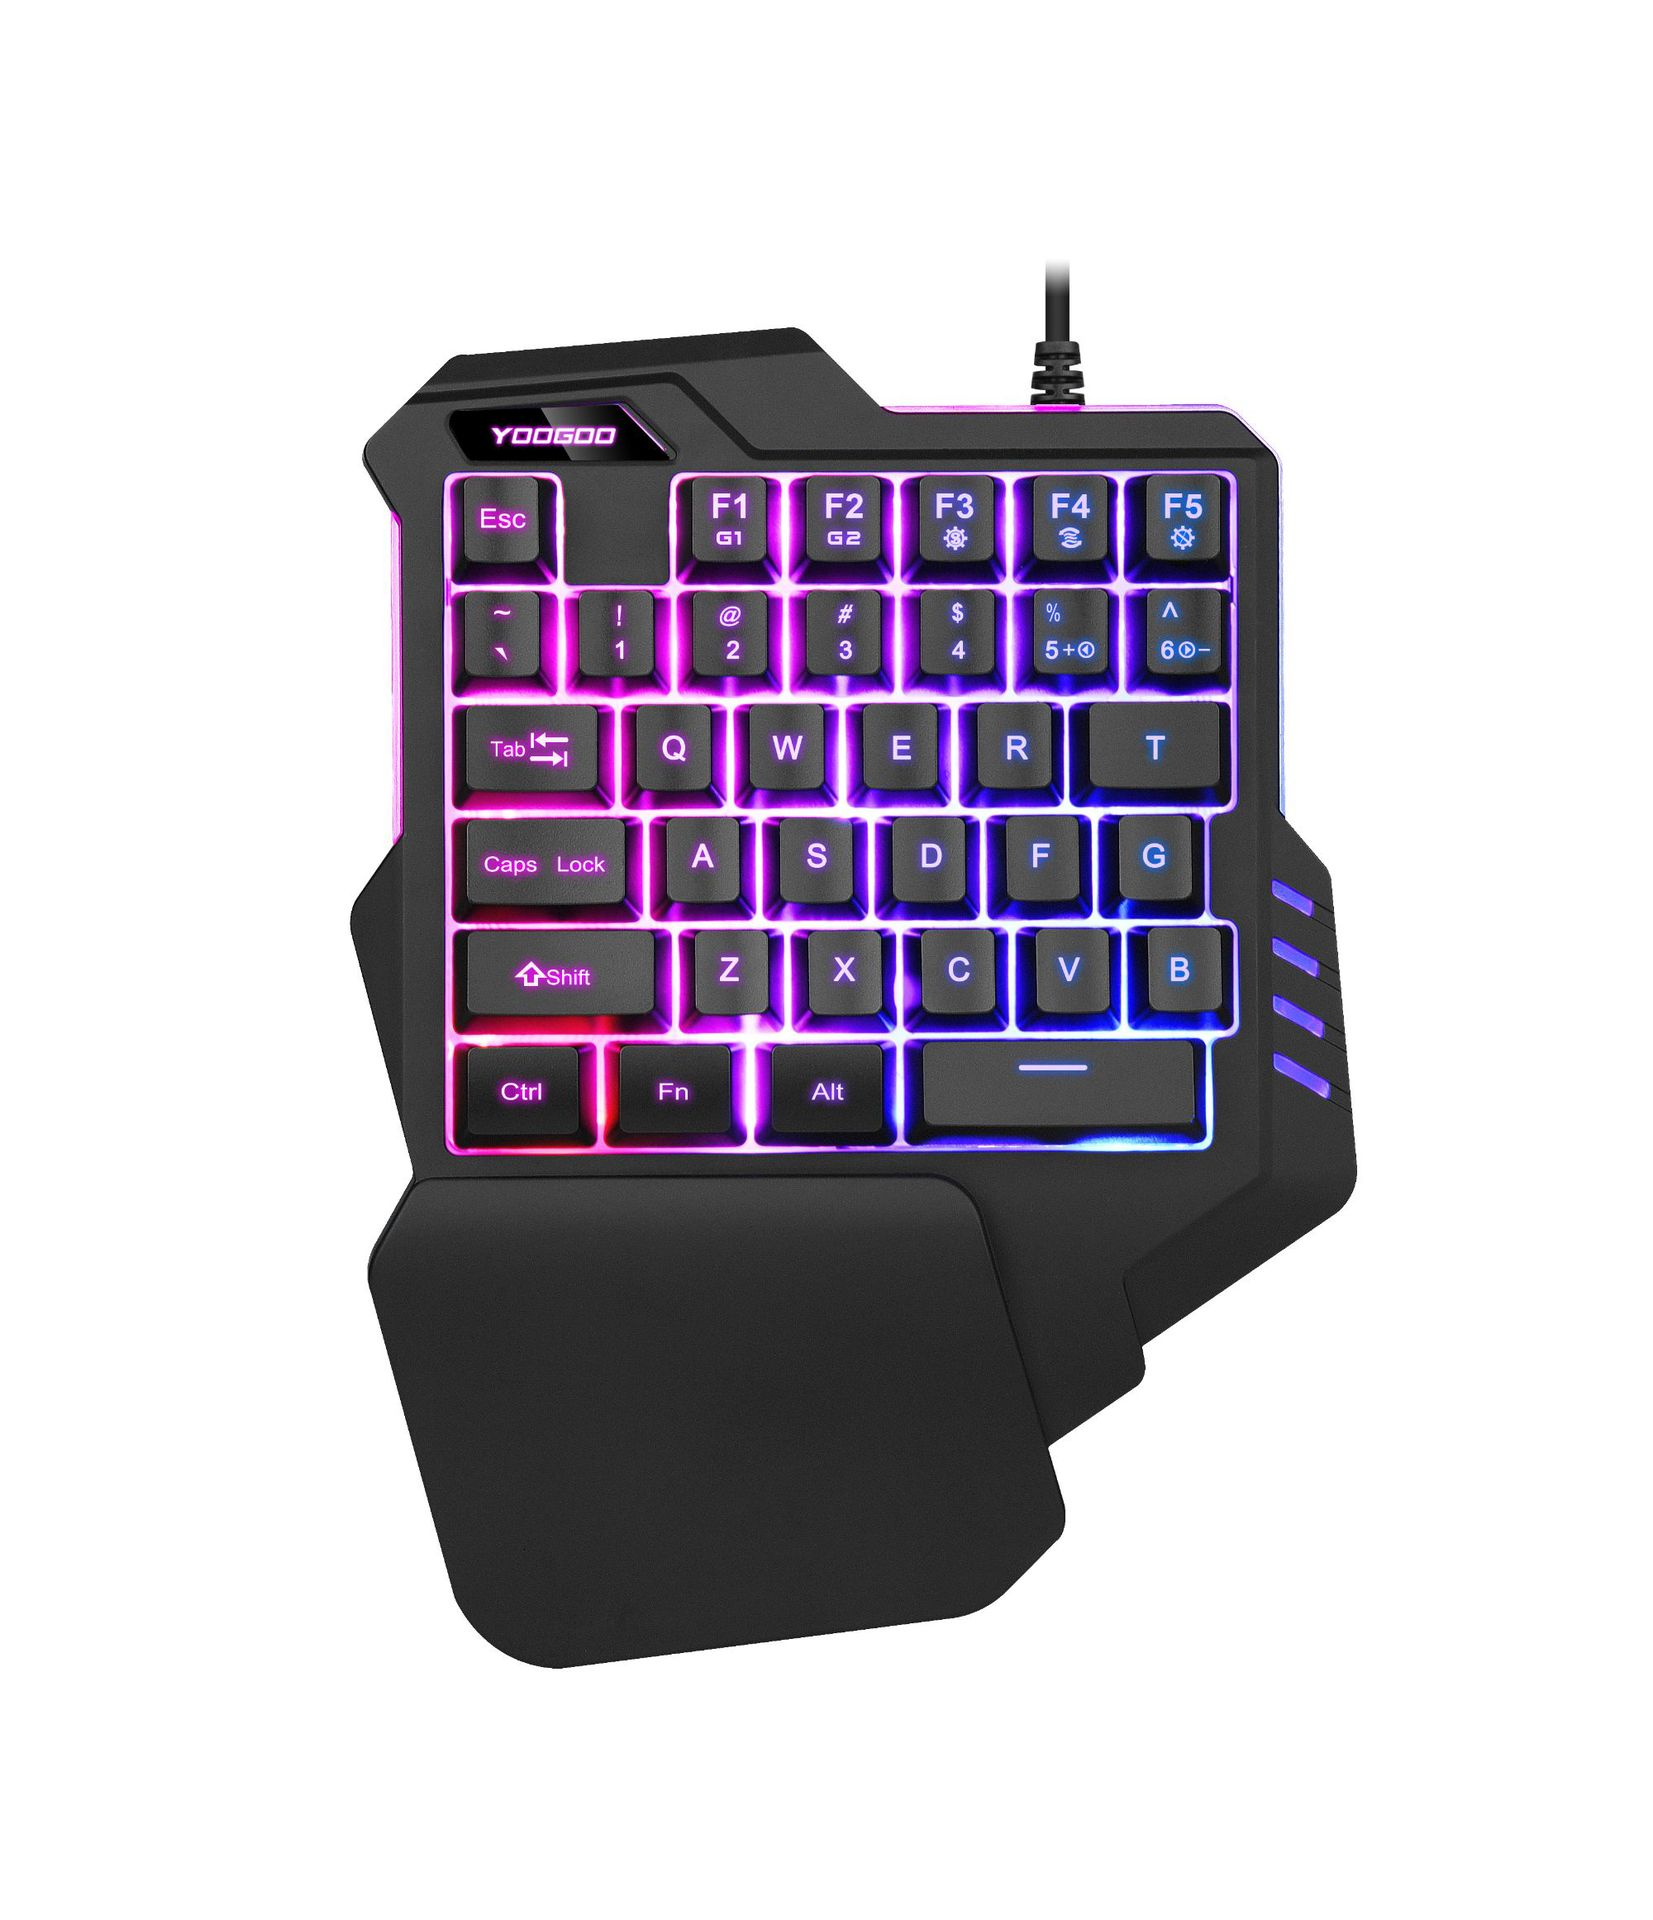 One-Handed Keyboard Colorful RGB Backlight Non-Machinery Laptop Computer Gaming Keyboard Chicken Hand Travel Cross Border Direct